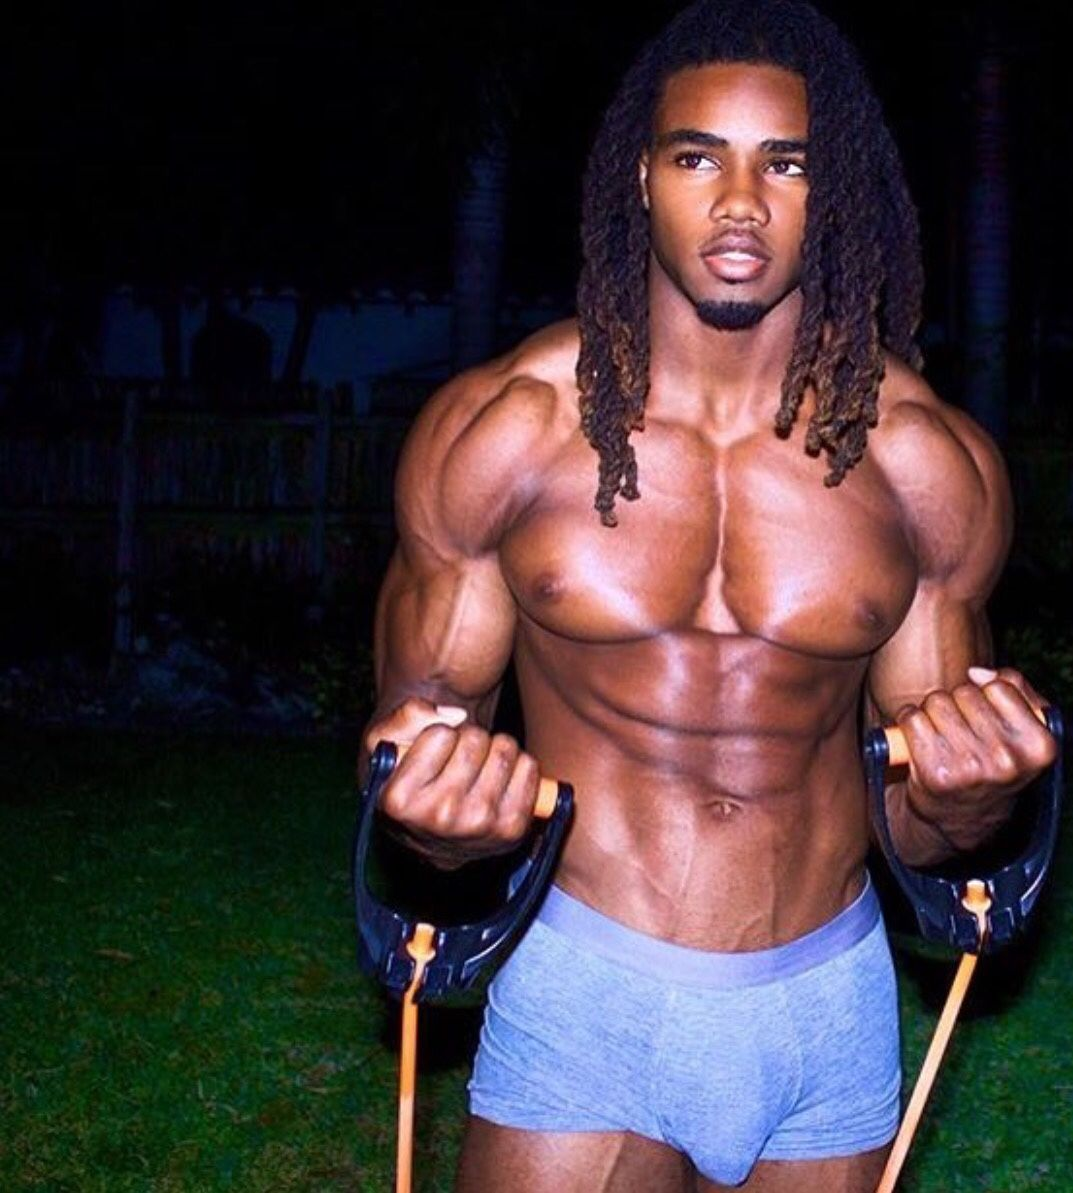 Pin on Sexy athletic black and light skin men